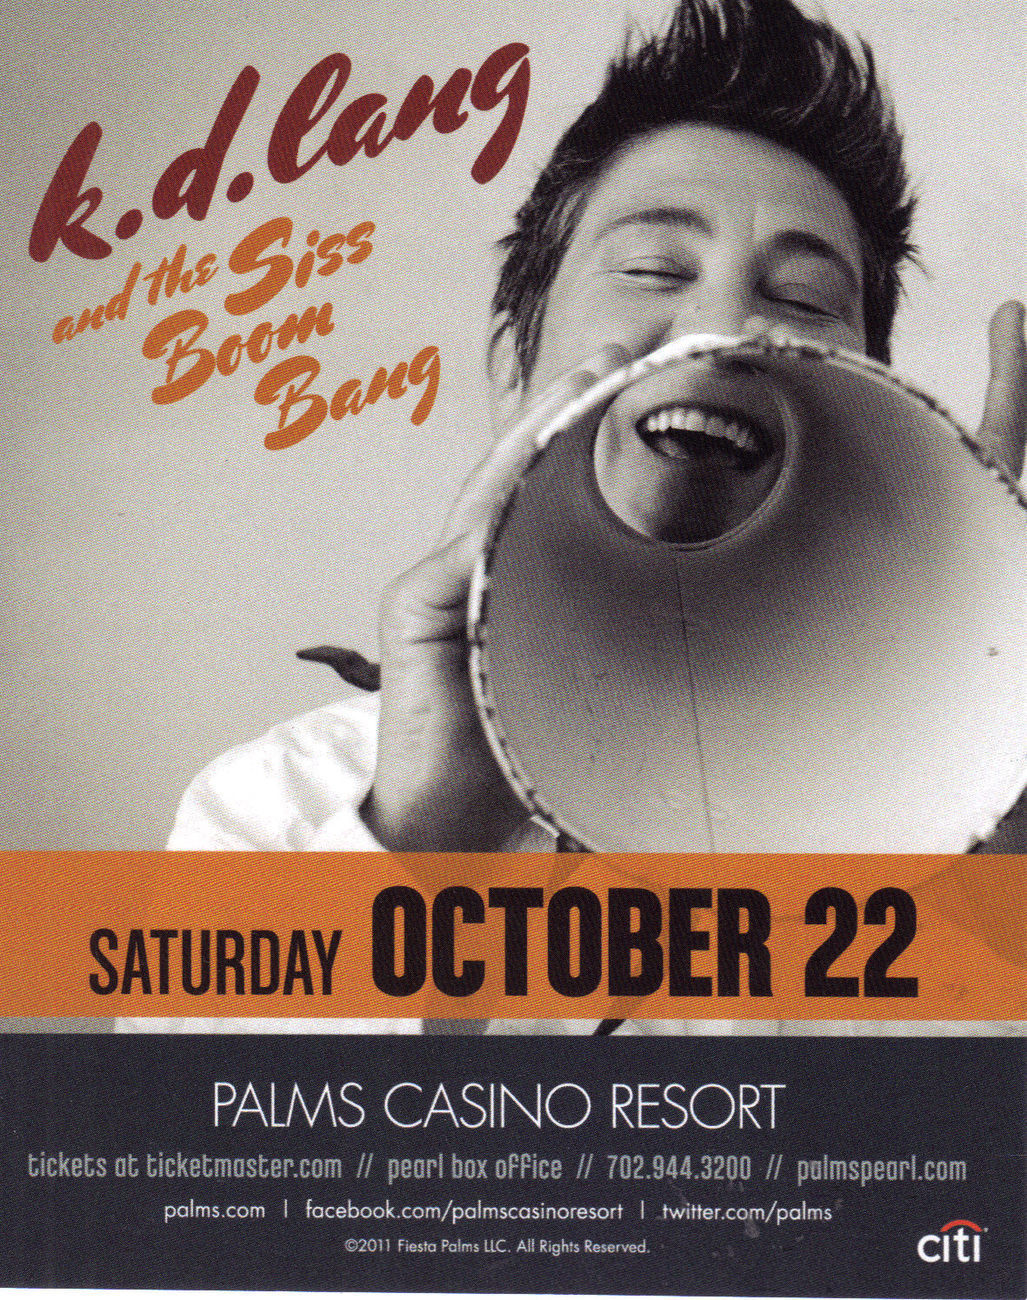 K.D. LANG & The SIS BOOM BANG / ERASURE TOUR @ The PEARL-PALMS  Vegas Promo Card